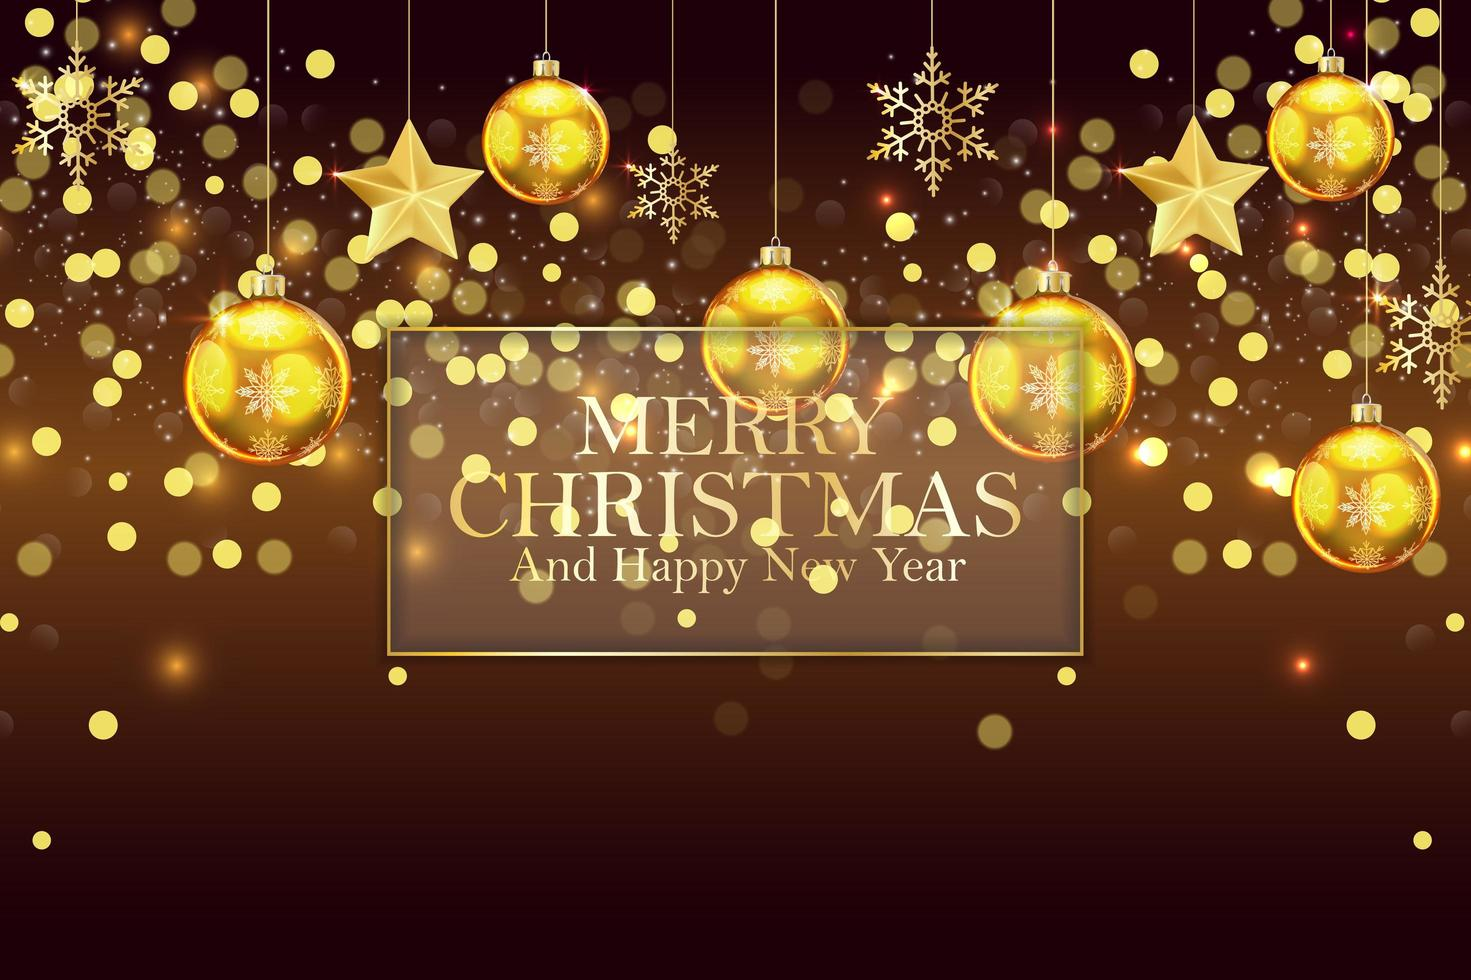 Christmas background with golden balls and snowflakes vector